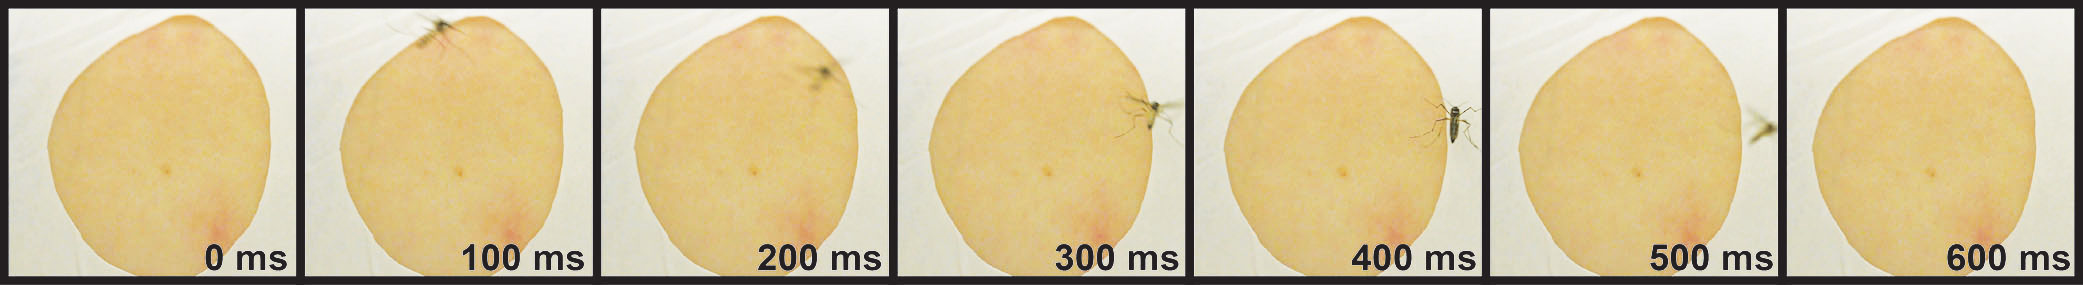 DEET contact chemorepellency: orco mutant mosquito lands on a DEET-treated arm at 400ms, but does not blood feed